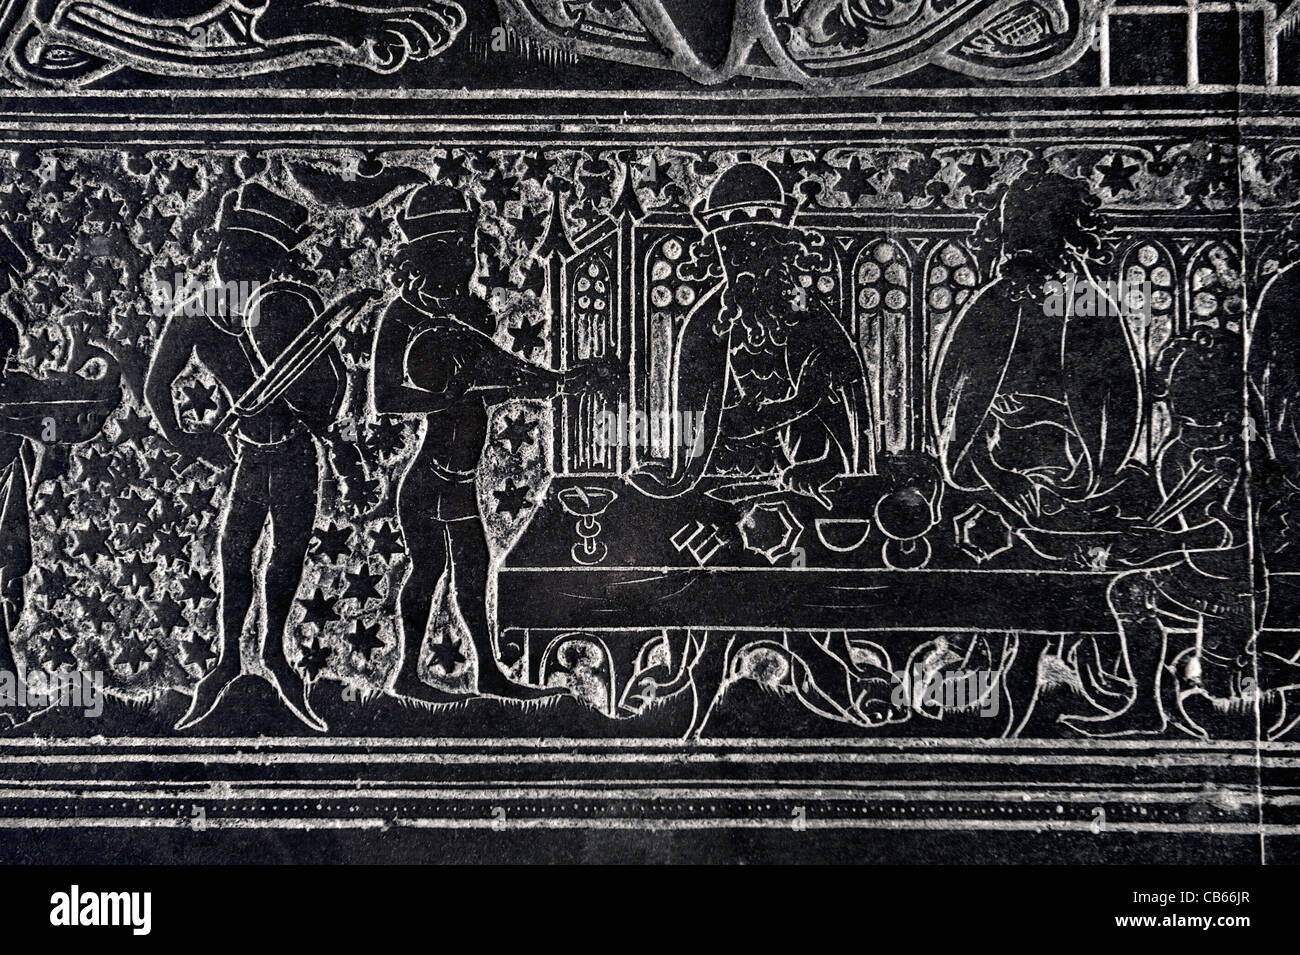 Detail. 1364 medieval memorial brass known as the Braunche Brass. St. Margarets Church, Kings Lynn, England. Minstrels - Stock Image